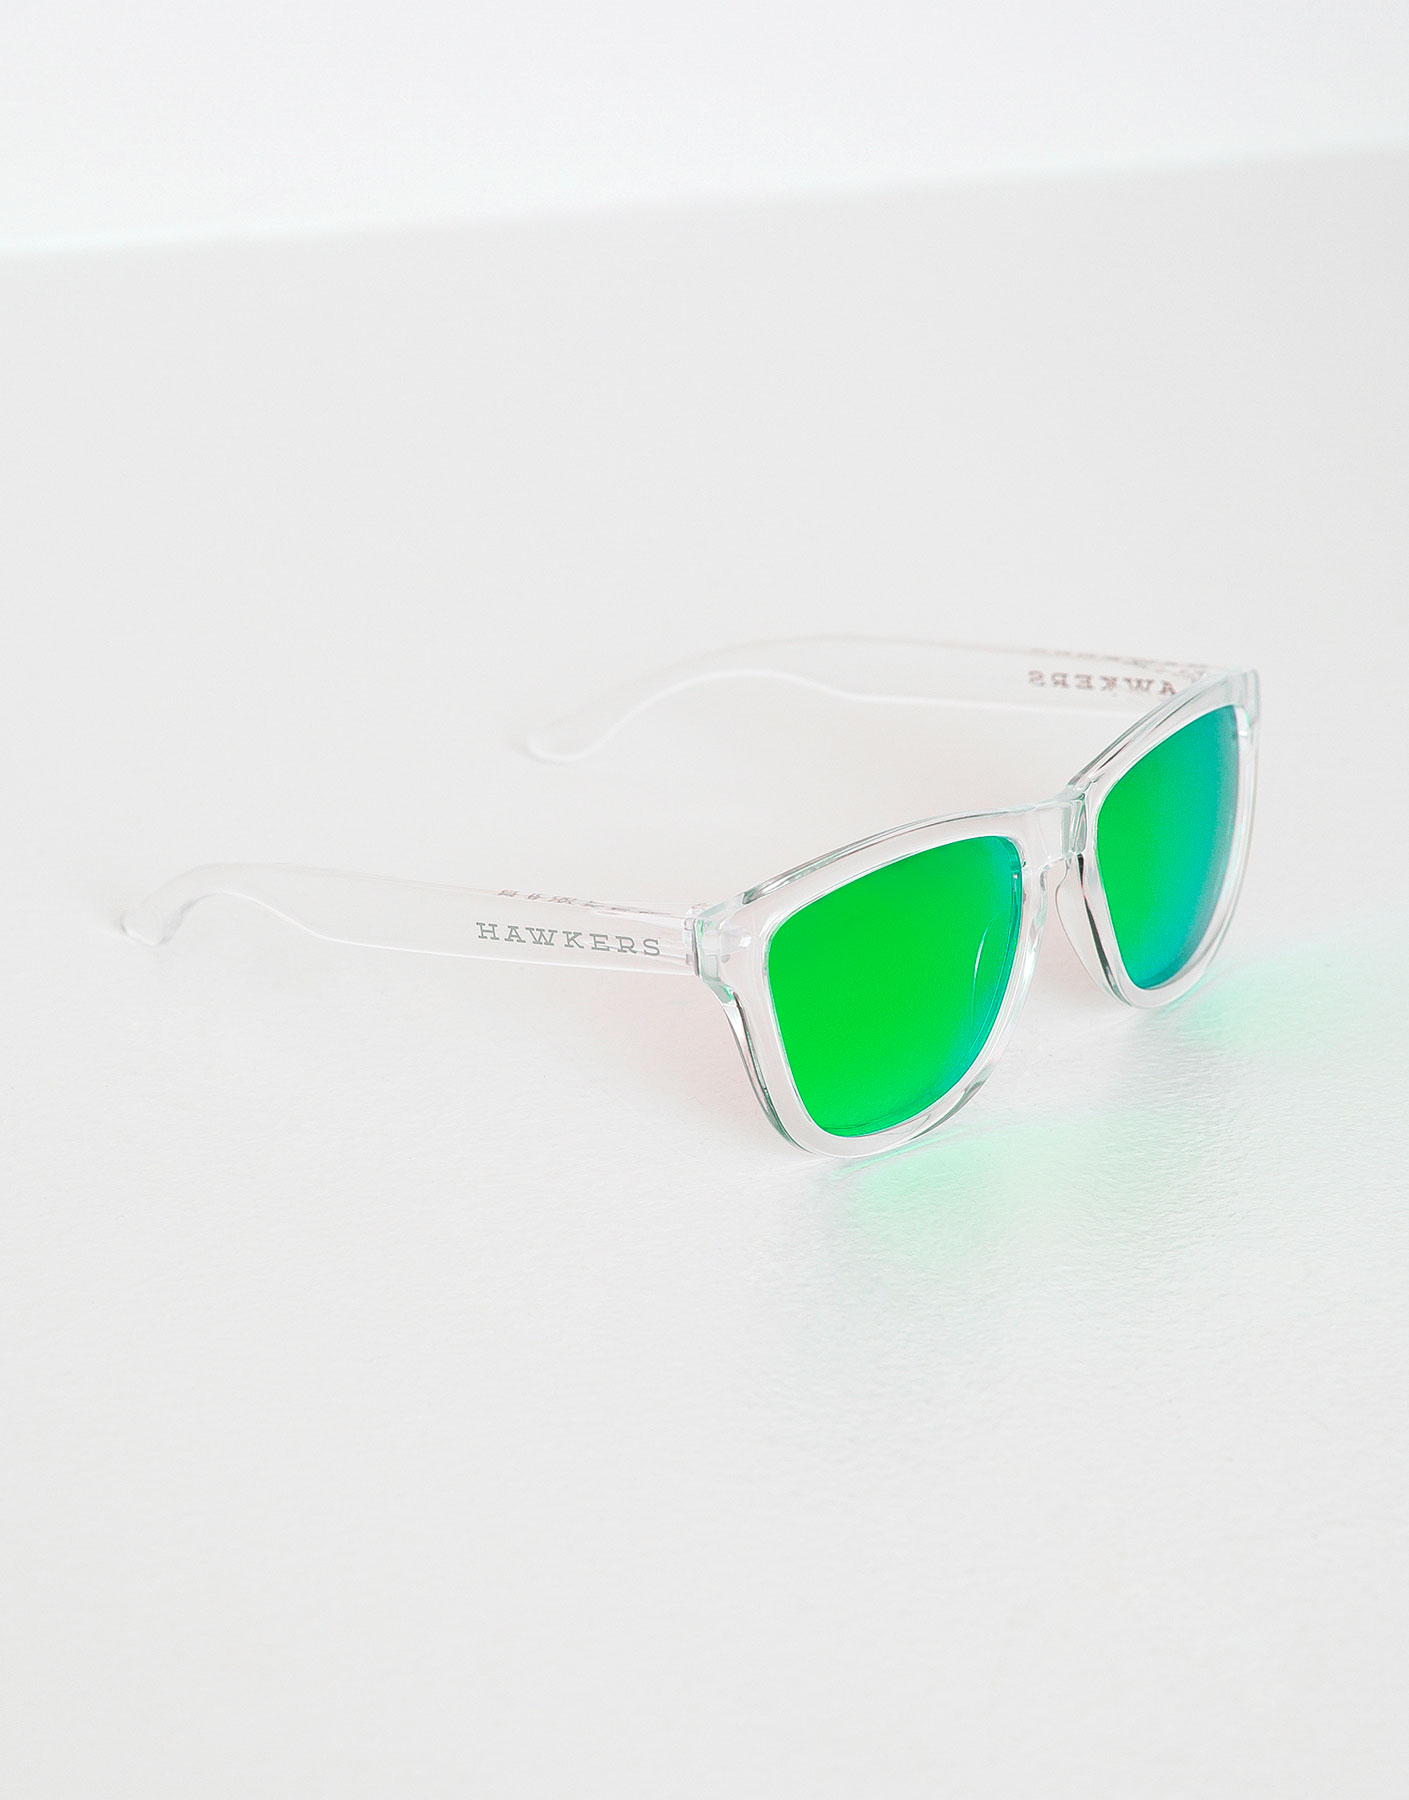 Lentes de sol hawkers air emerald one